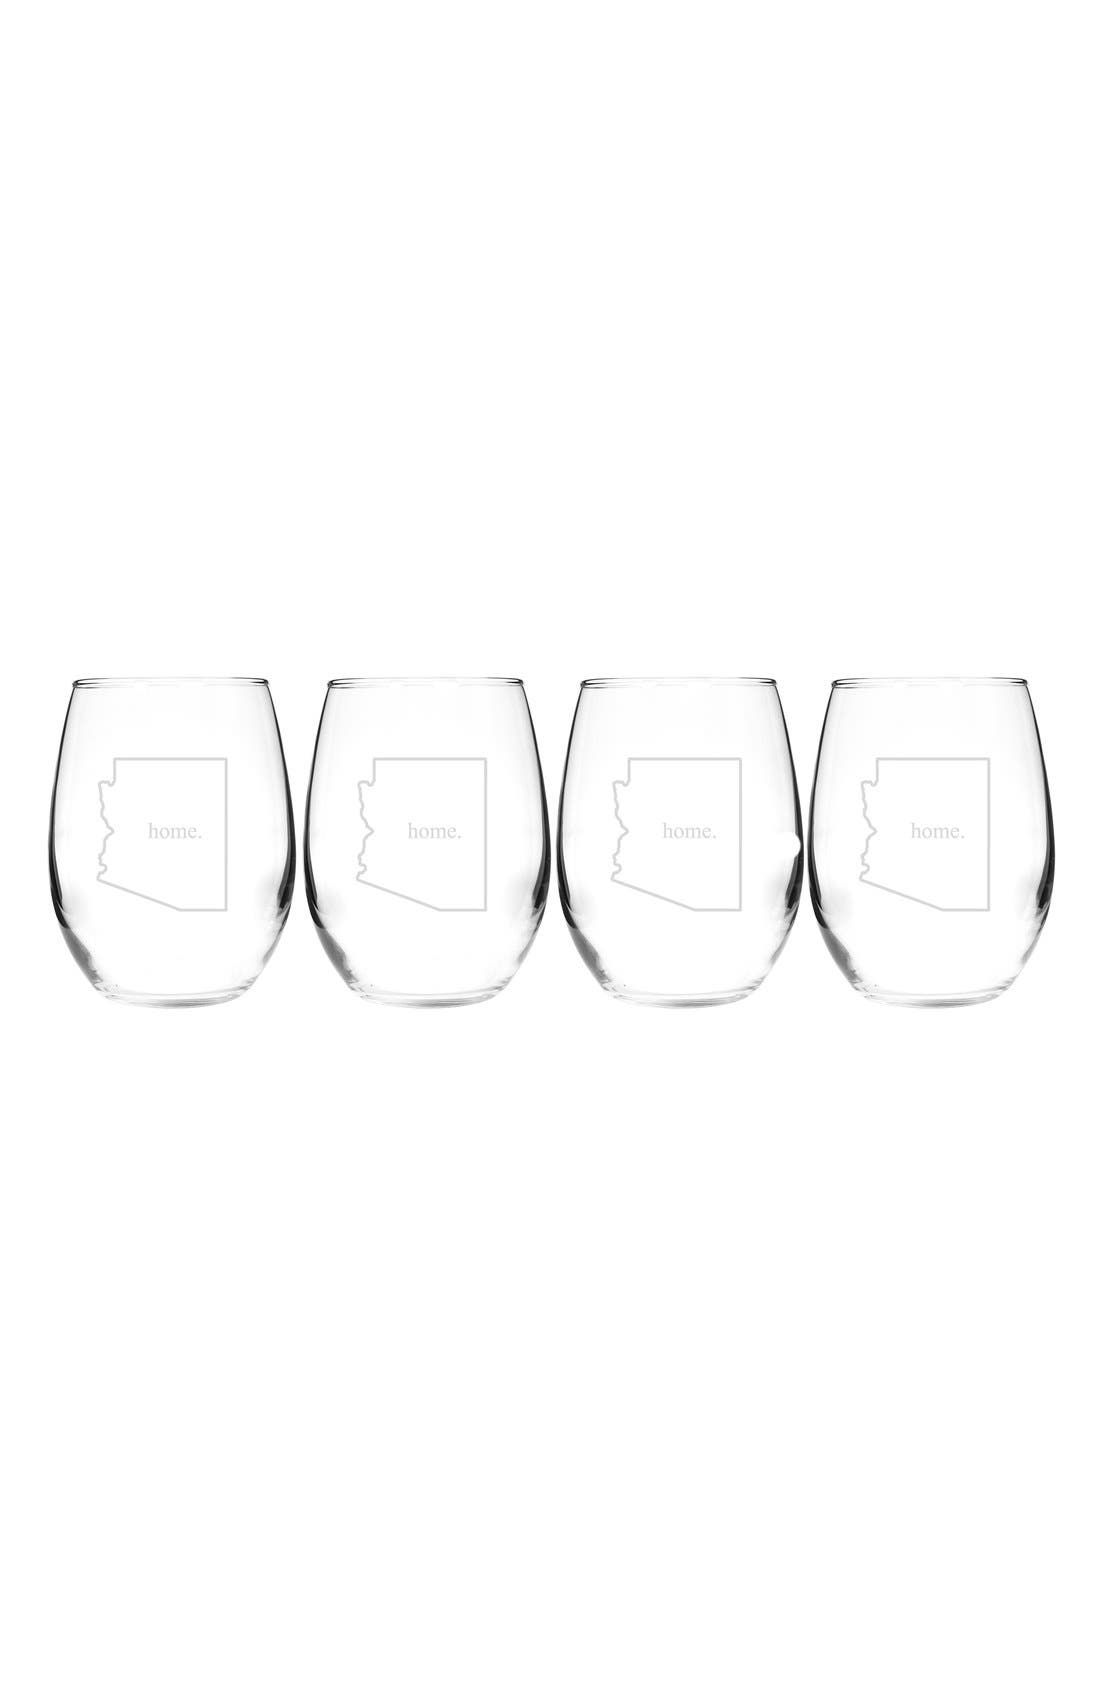 Home State Set of 4 Stemless Wine Glasses,                             Main thumbnail 5, color,